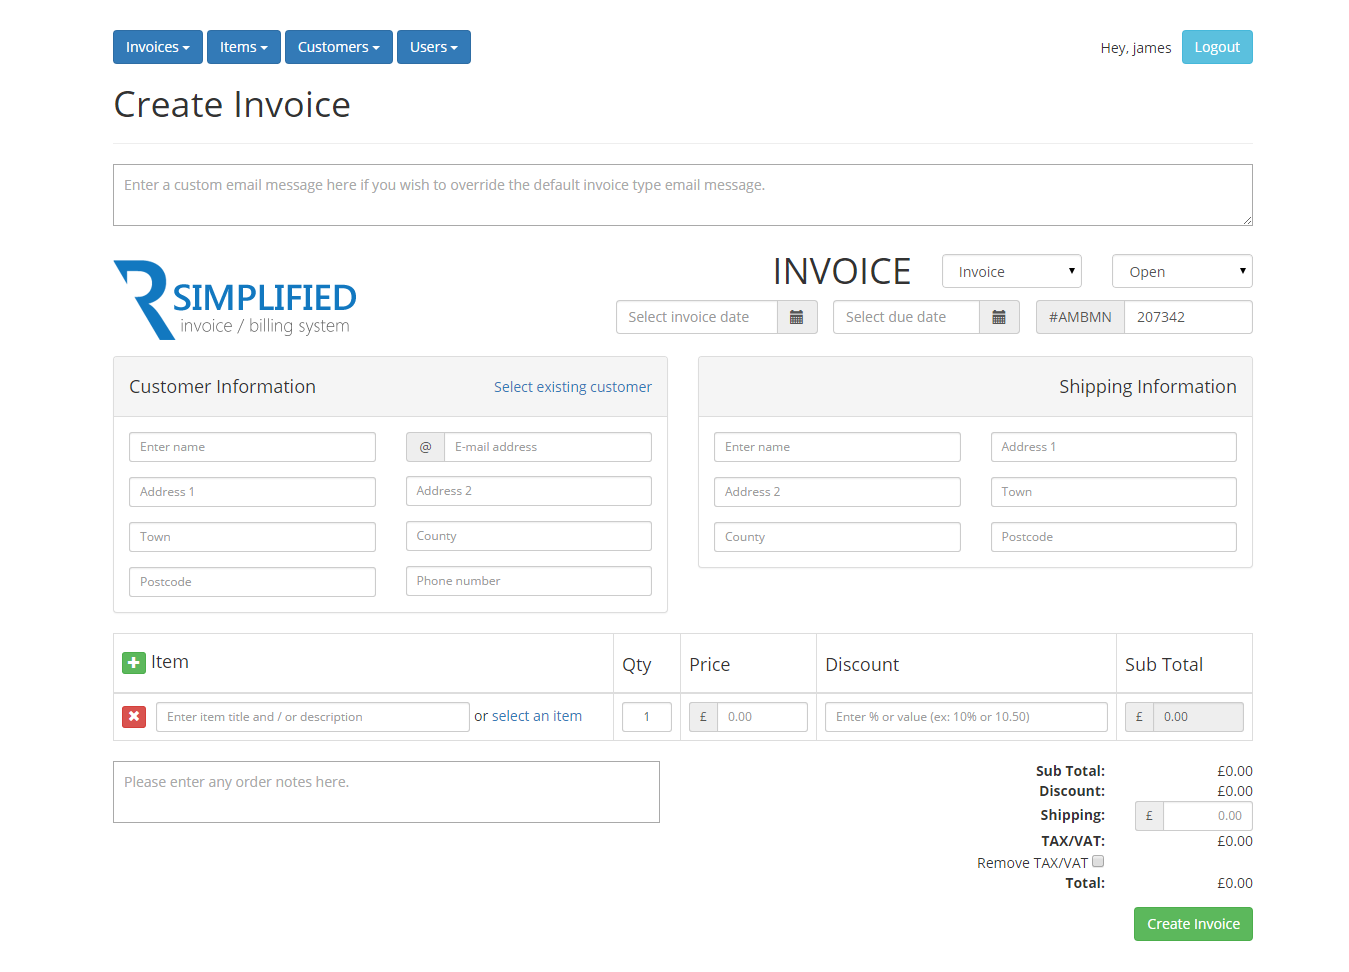 Opposenewapstandardsus  Ravishing Simplified Php Invoice  Billing System By Rebootdigitaluk  With Luxury  Createinvoicepng  With Amusing How To Set Up An Invoice Also Ford Dealer Invoice In Addition Business Invoices Templates And Sample Invoice Templates As Well As Invoice And Inventory Software Additionally Vendor Invoice Definition From Codecanyonnet With Opposenewapstandardsus  Luxury Simplified Php Invoice  Billing System By Rebootdigitaluk  With Amusing  Createinvoicepng  And Ravishing How To Set Up An Invoice Also Ford Dealer Invoice In Addition Business Invoices Templates From Codecanyonnet